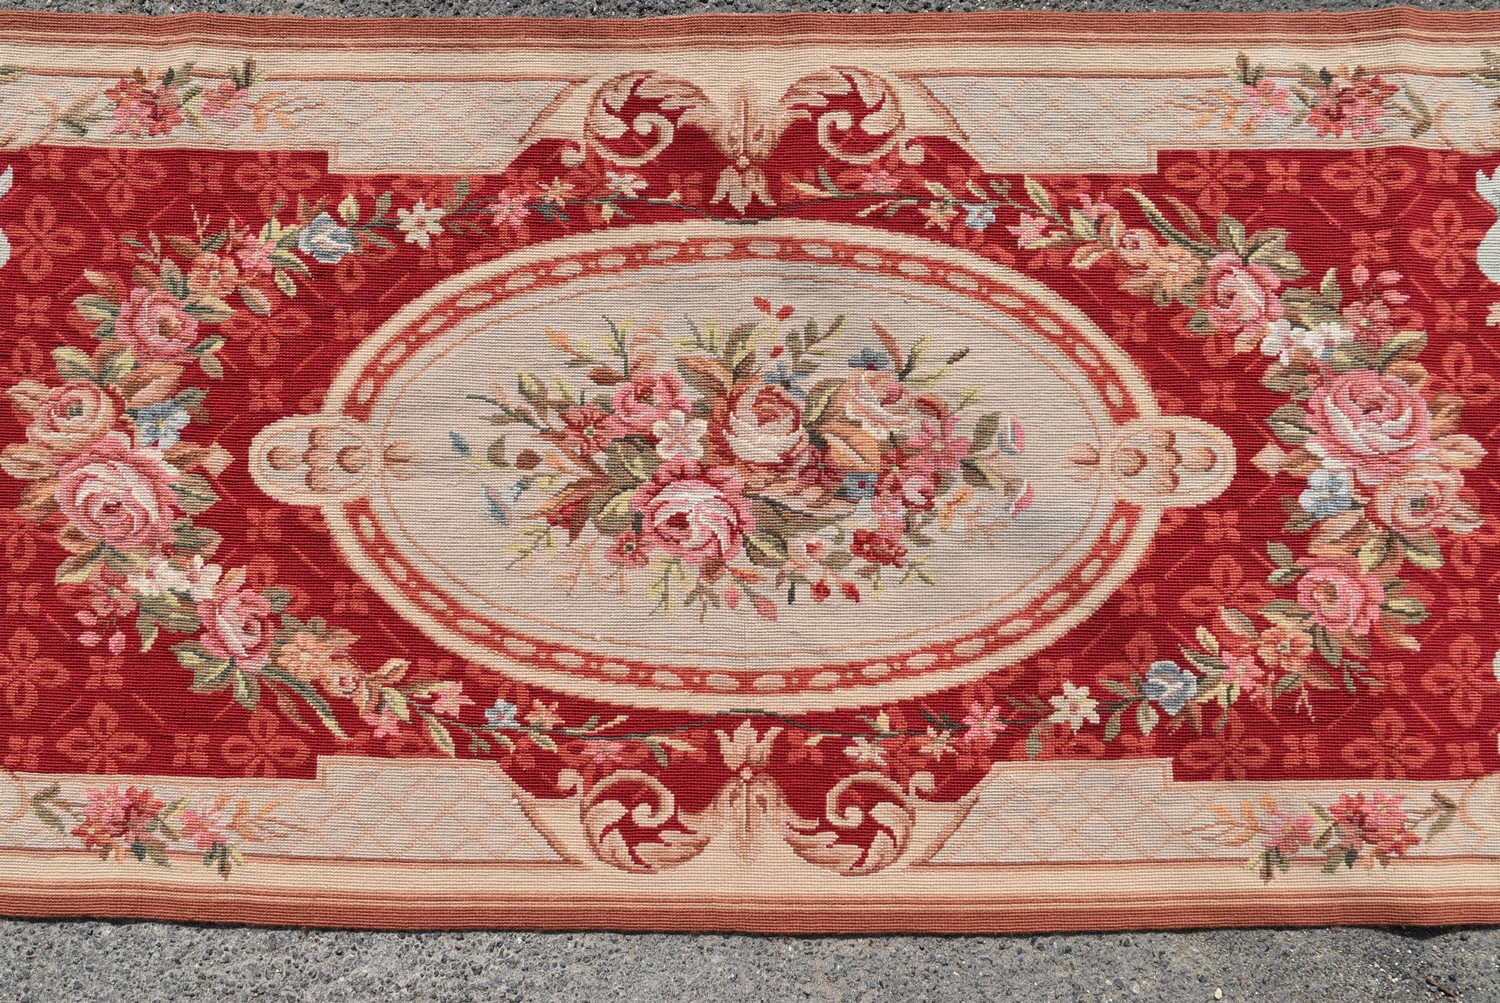 A needlepoint rug with central floral cartouche on a burgundy field within ribbon and flowerhead - Image 2 of 4